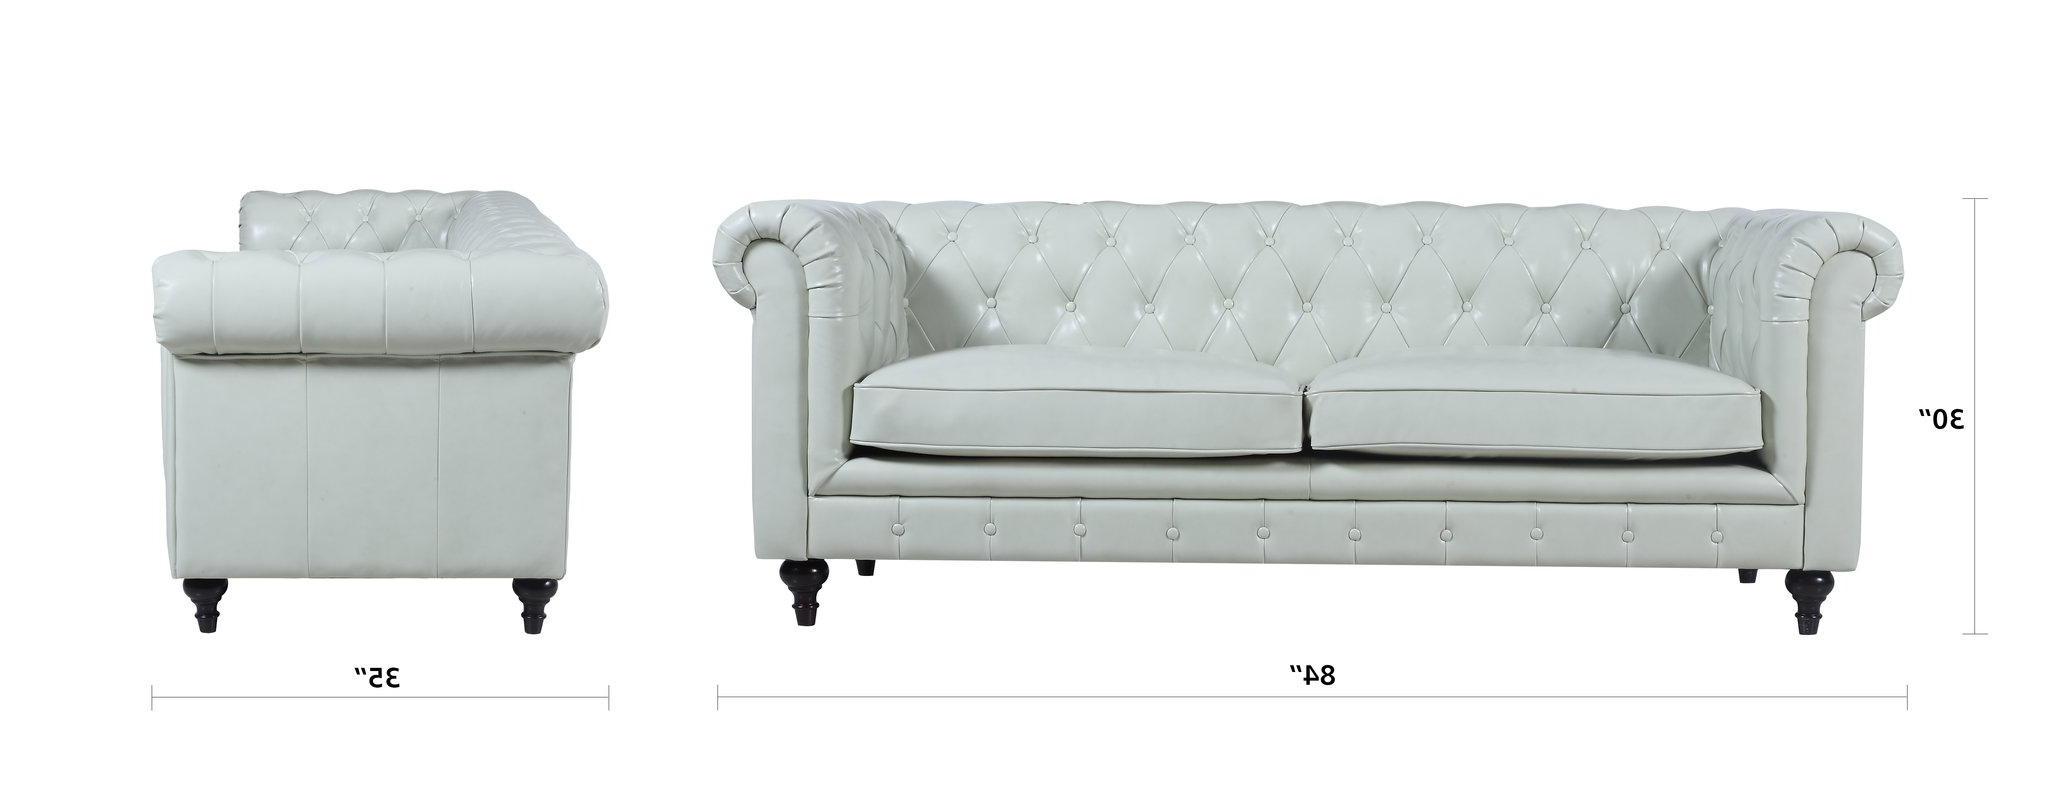 Tufted Leather Chesterfield Sofa & Reviews (View 19 of 20)